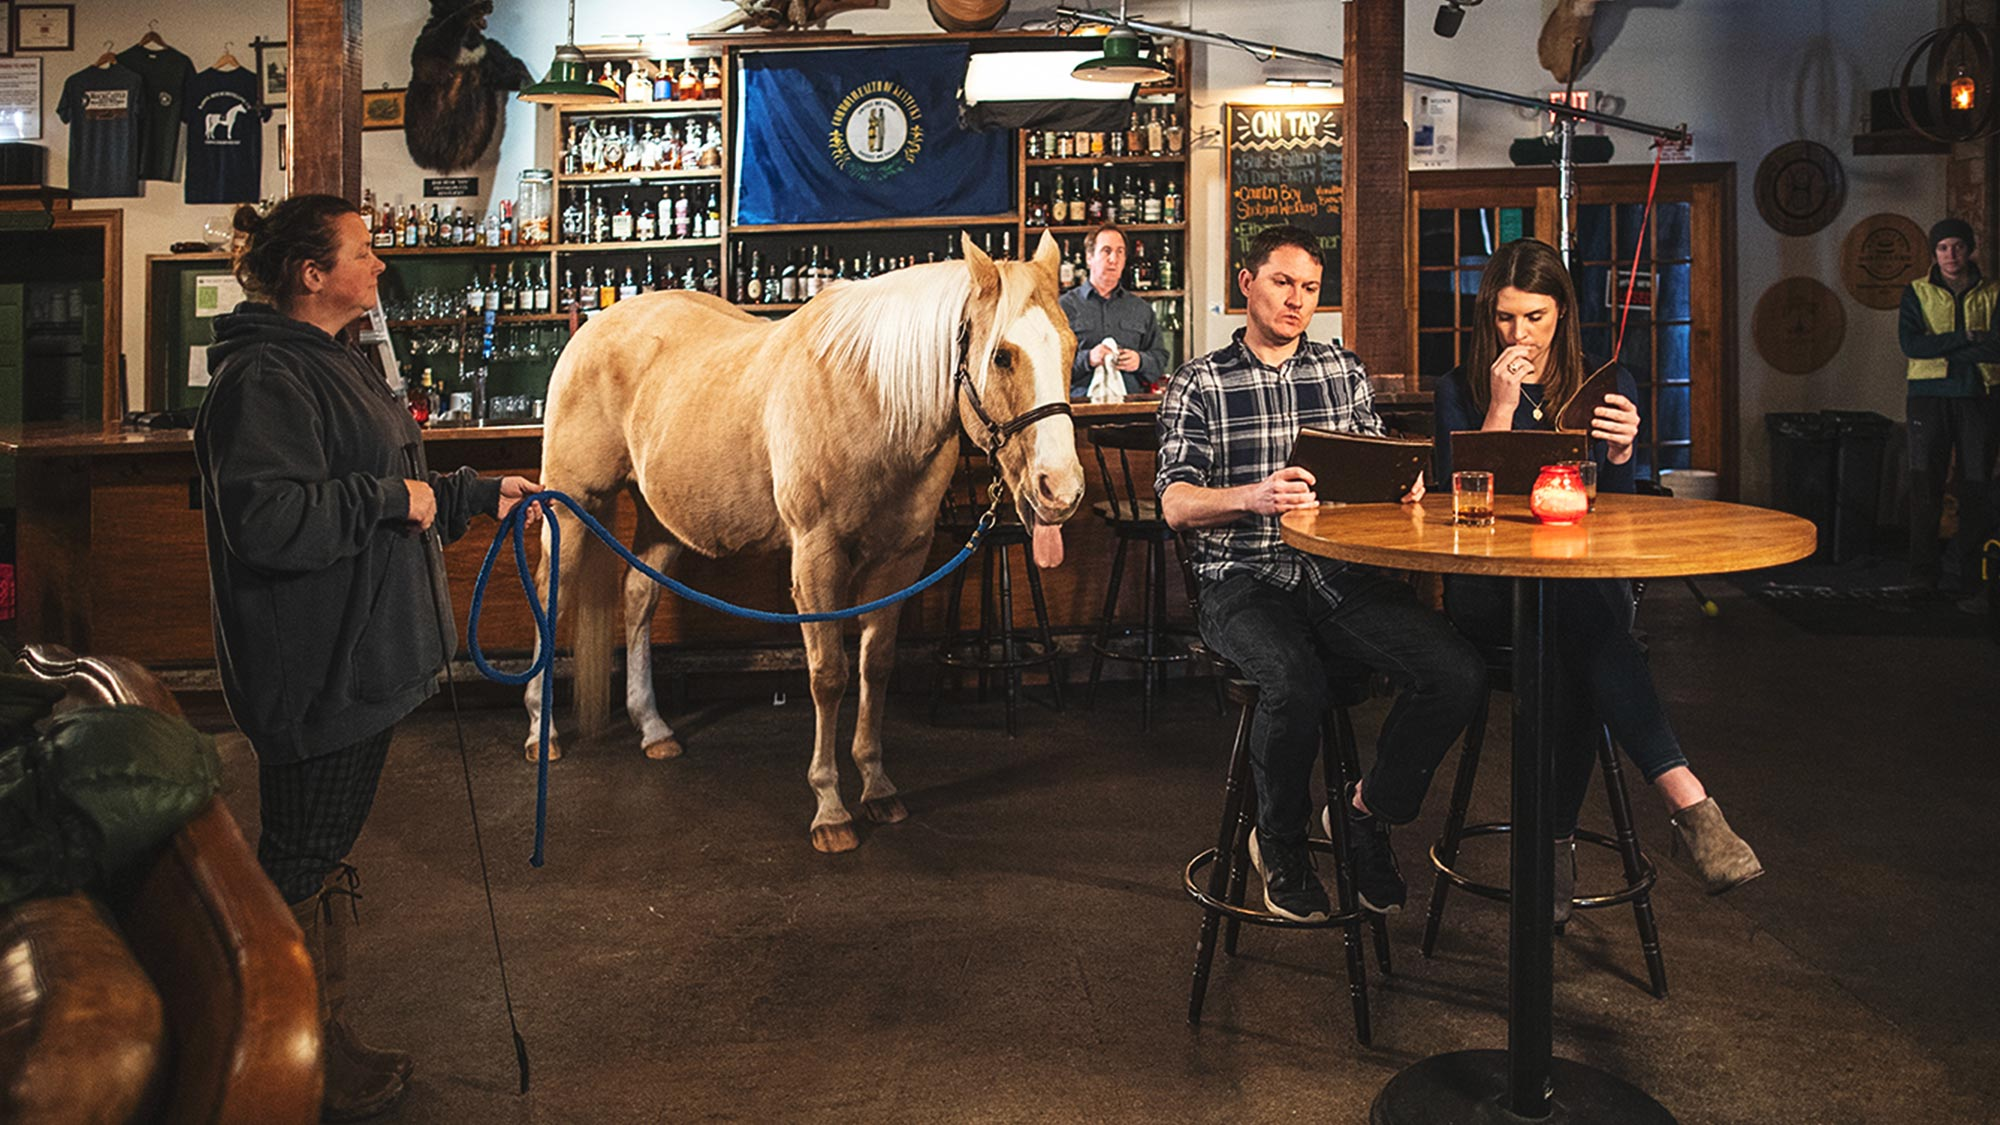 Behind the Scenes - Horse Walks into a Bourbon Bar